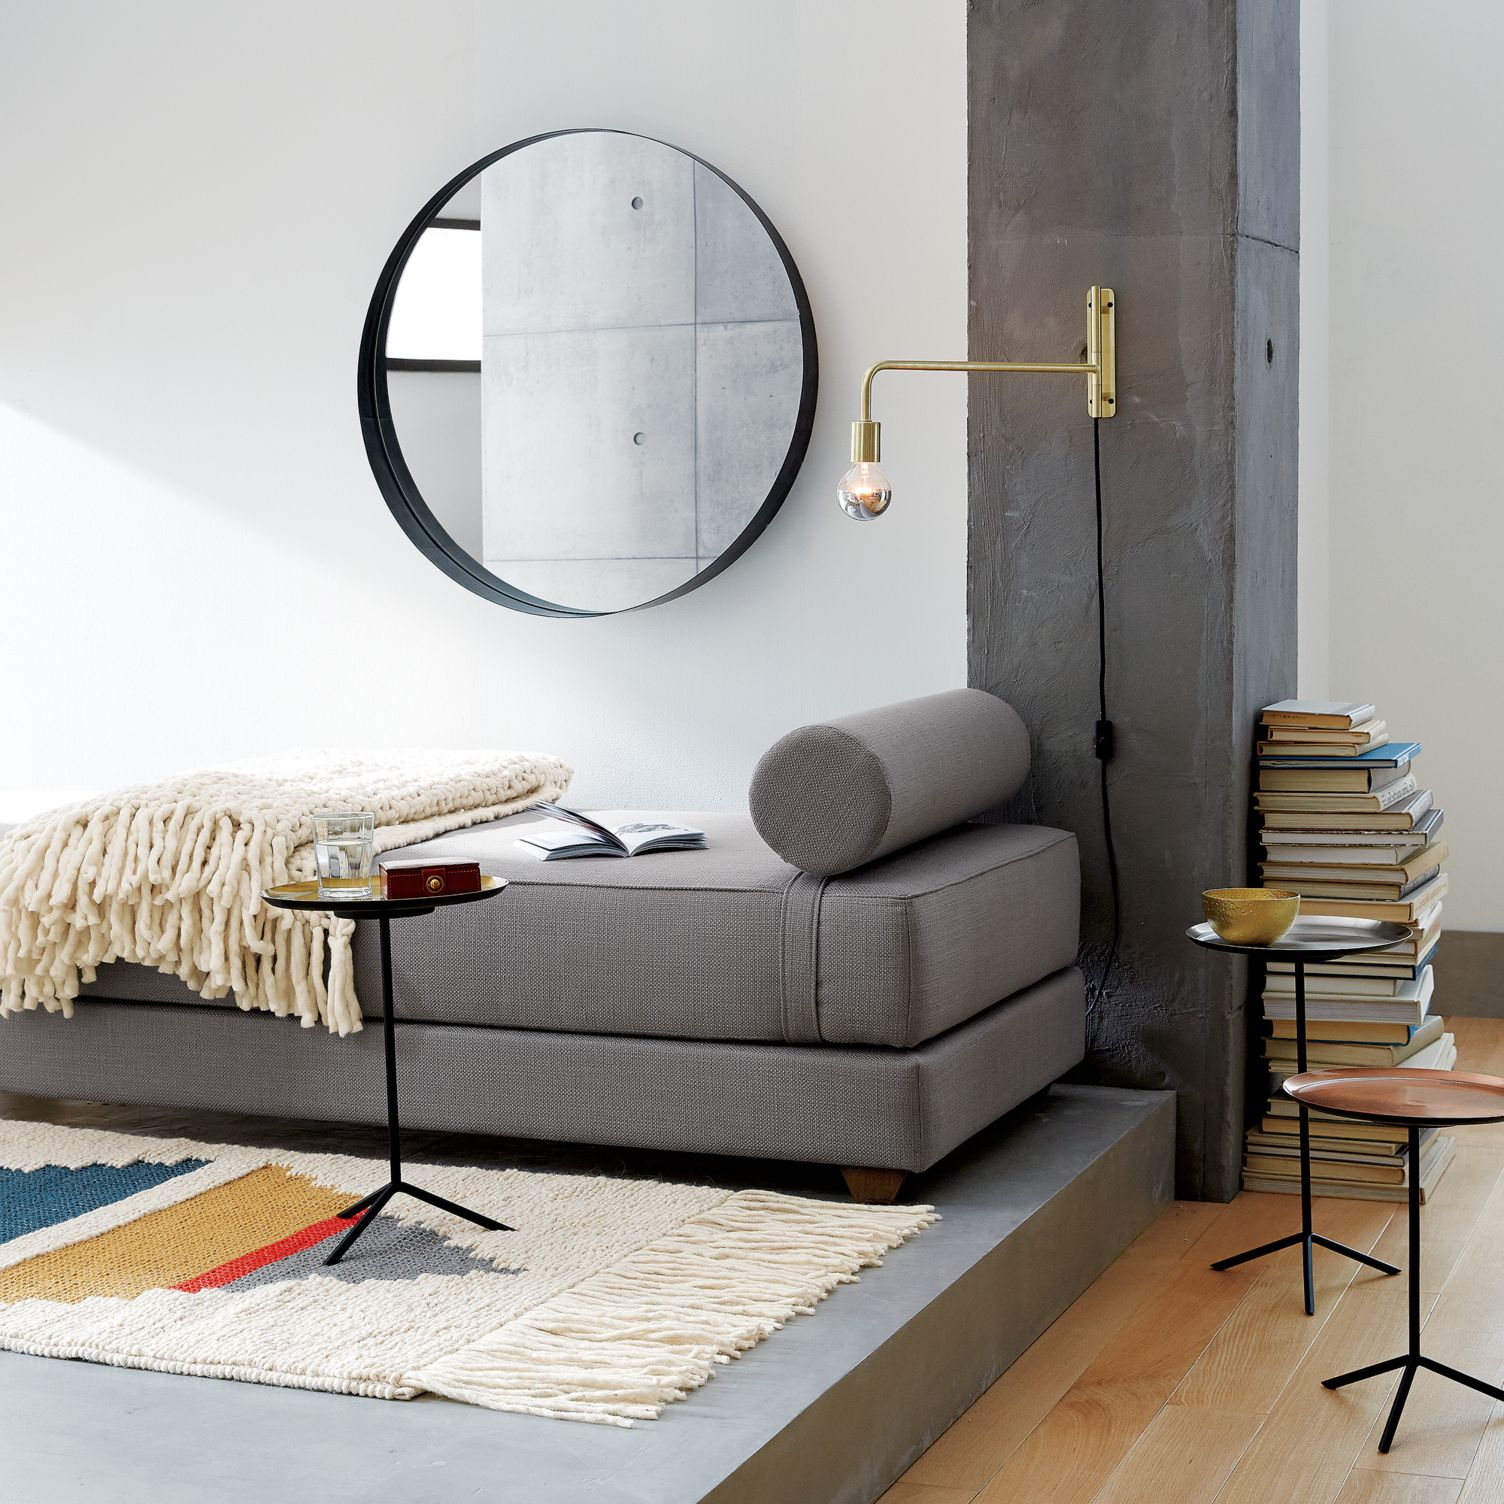 Grey daybed with a cylinder pillow